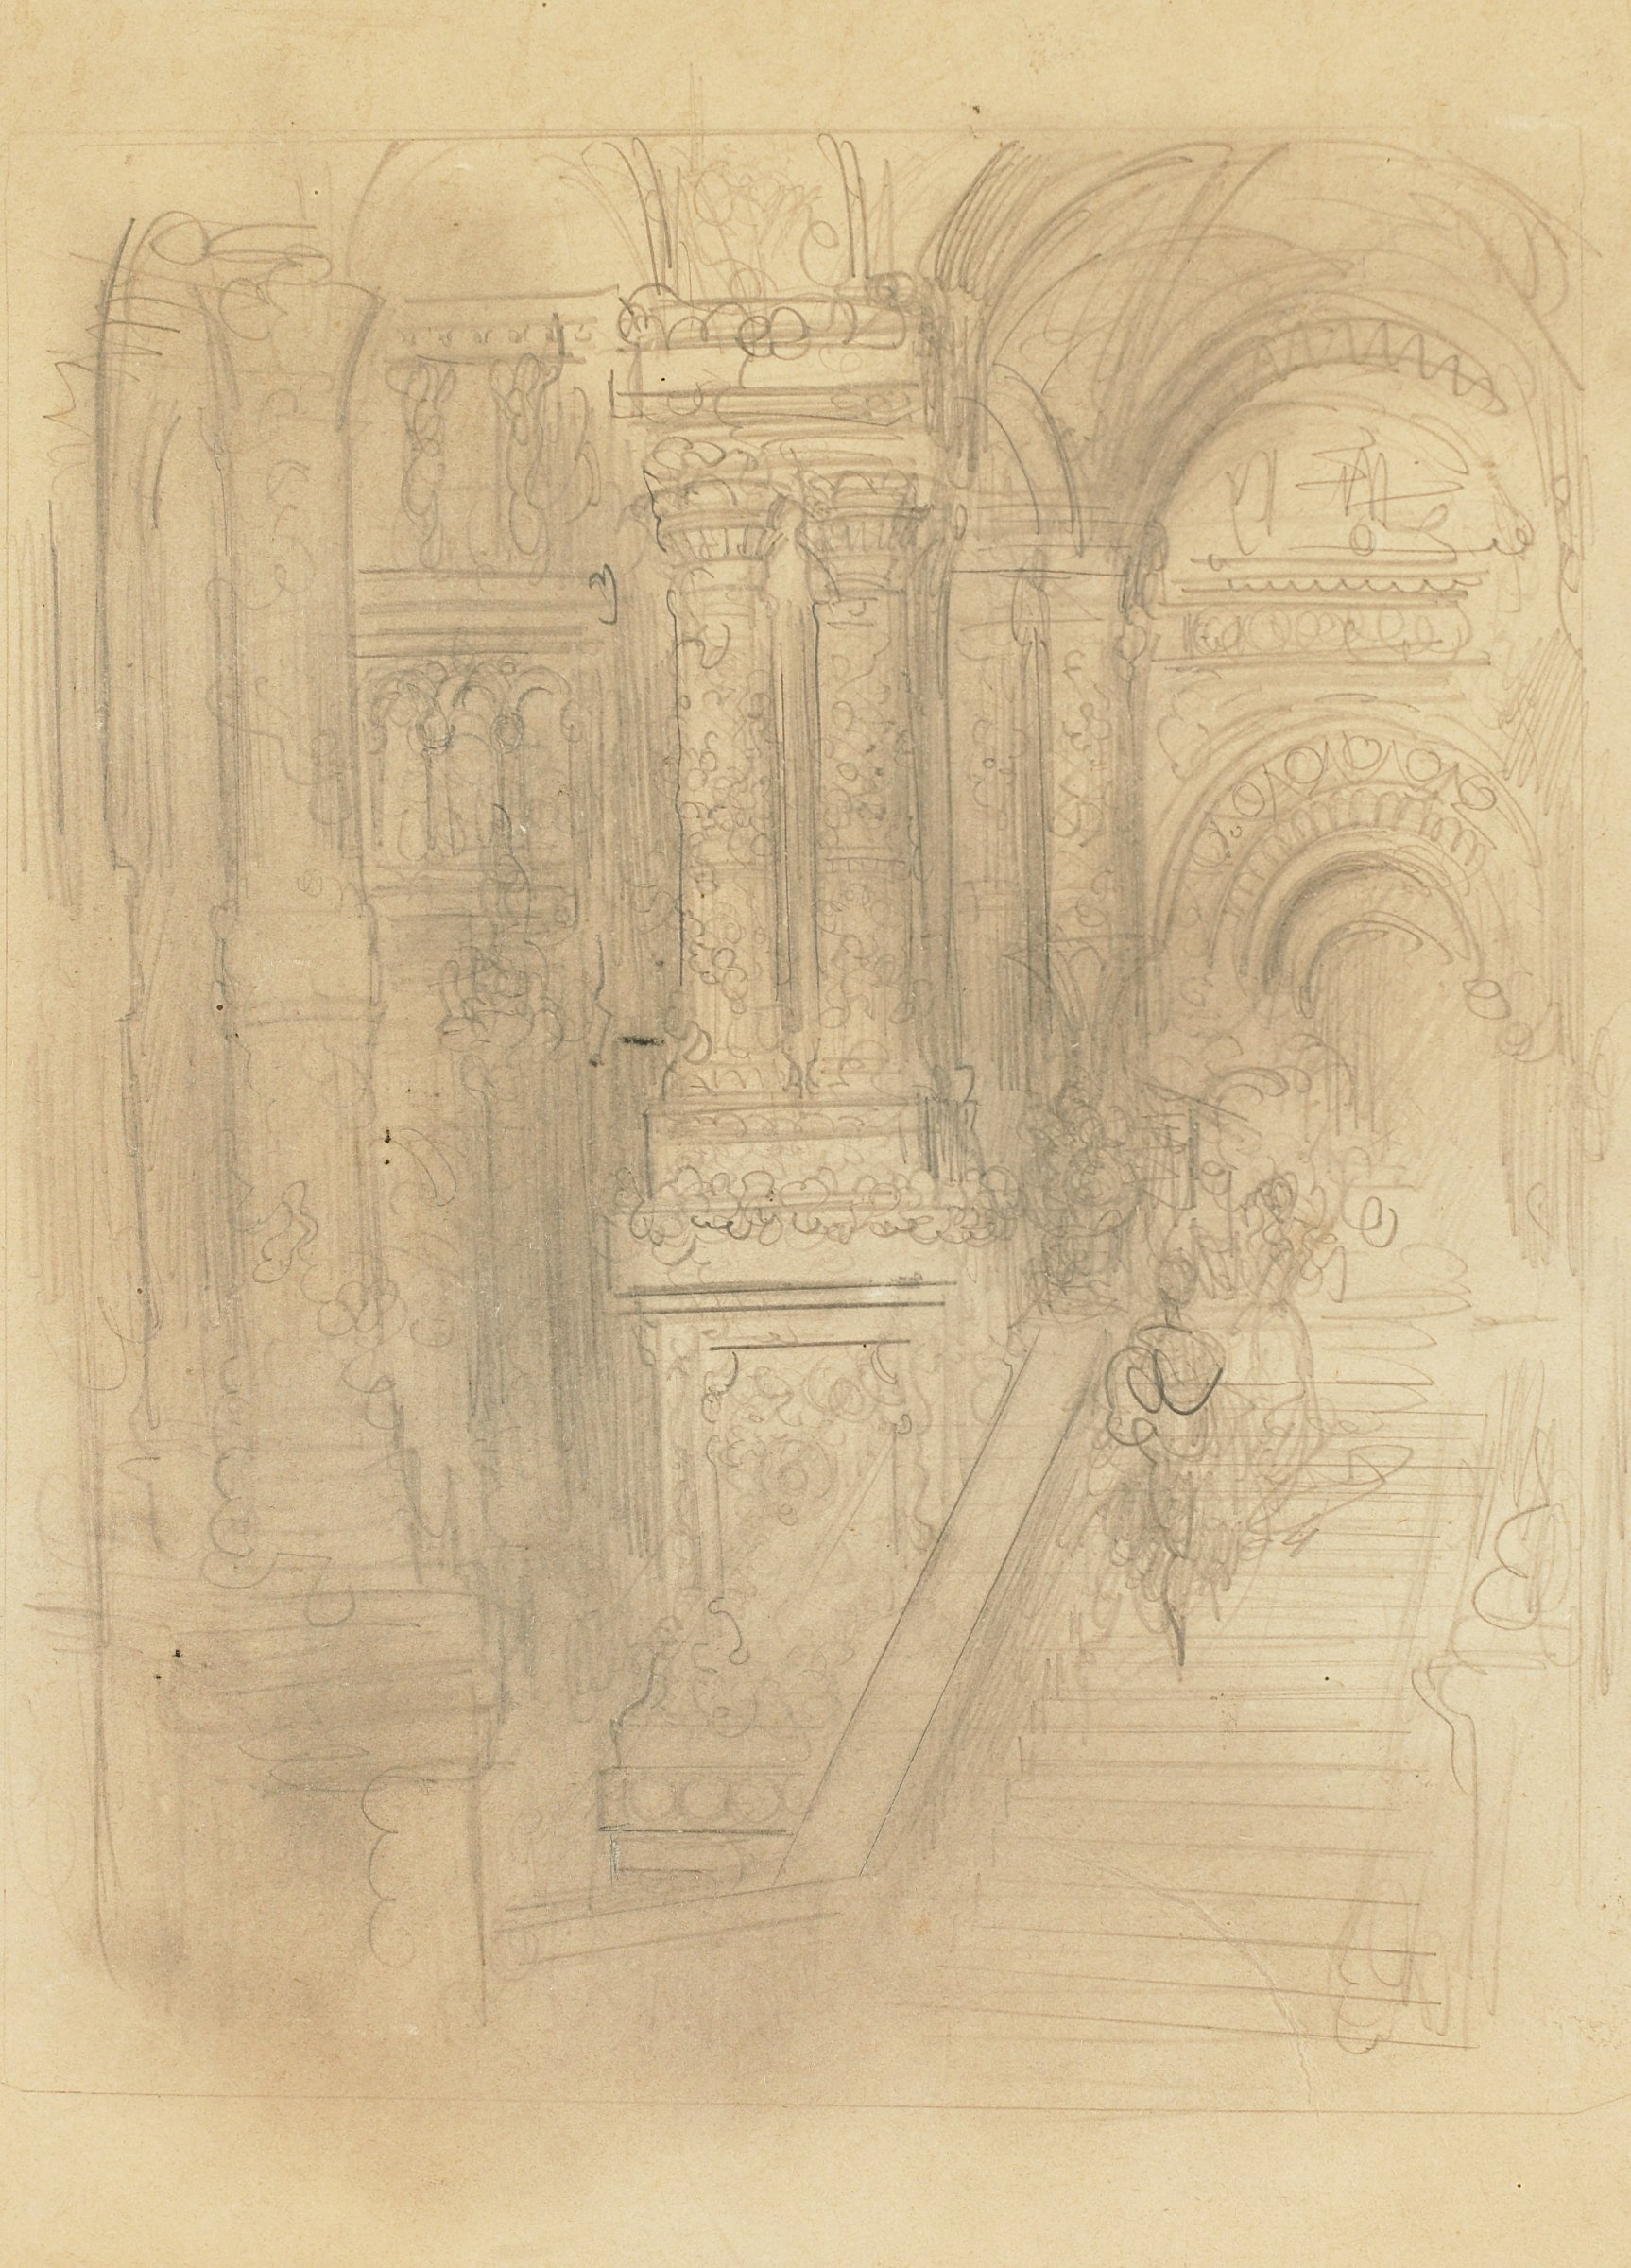 On the recto, a central figure stands underneath an arch and between two columns. Figures appear to surround him. On the verso, two figures descend a staircase in an ornately decorated room.